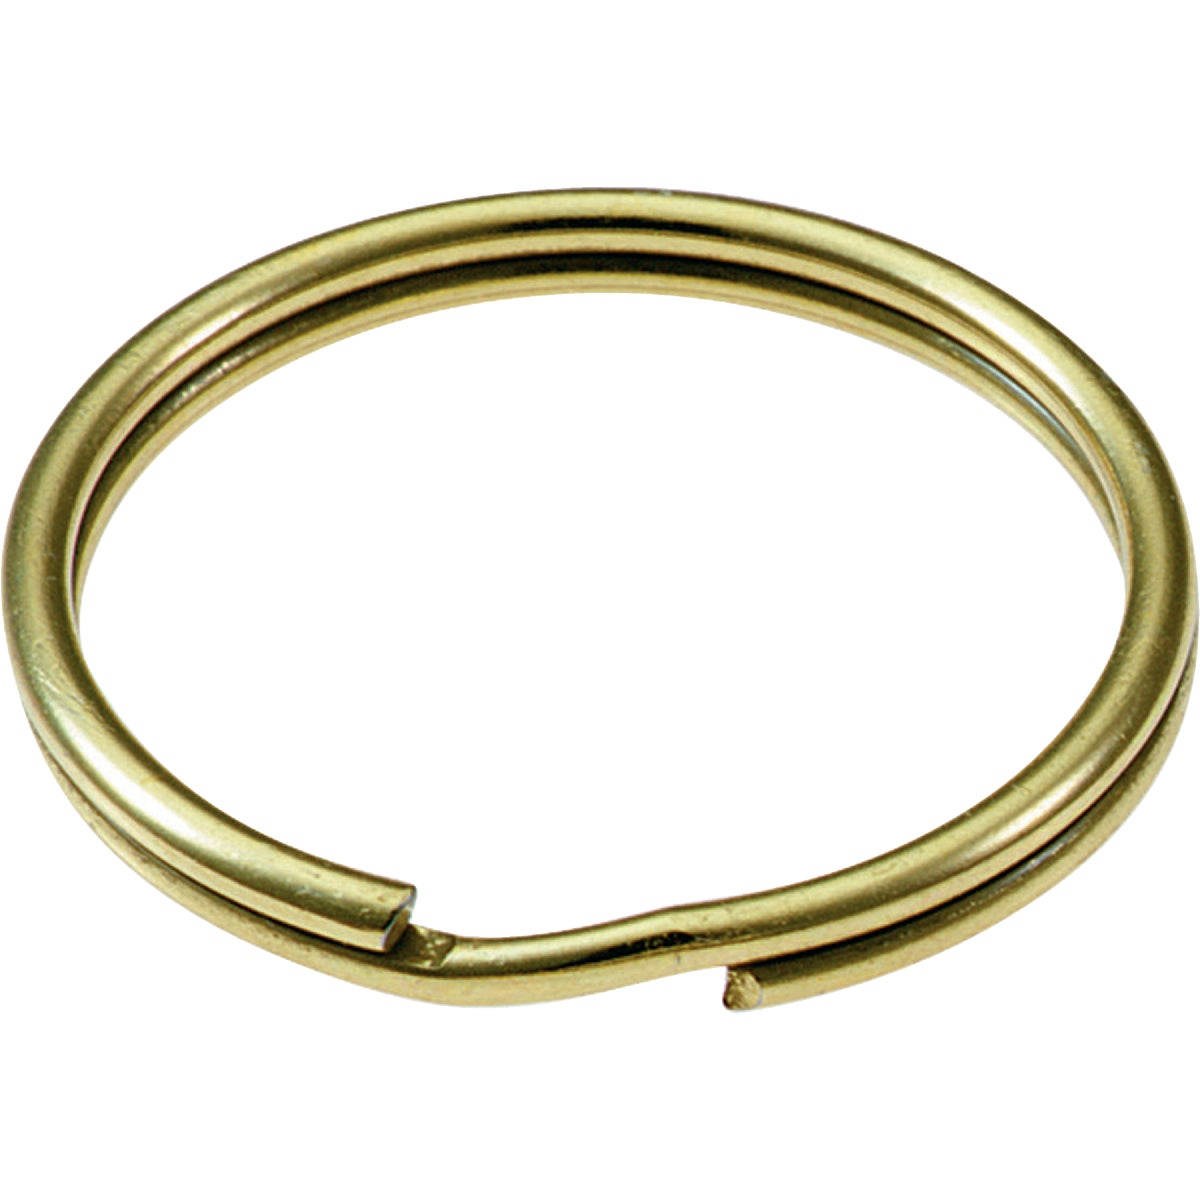 "2PK 7/8"" BRASS KEY RING - 77302 by Lucky Line Prod Inc"